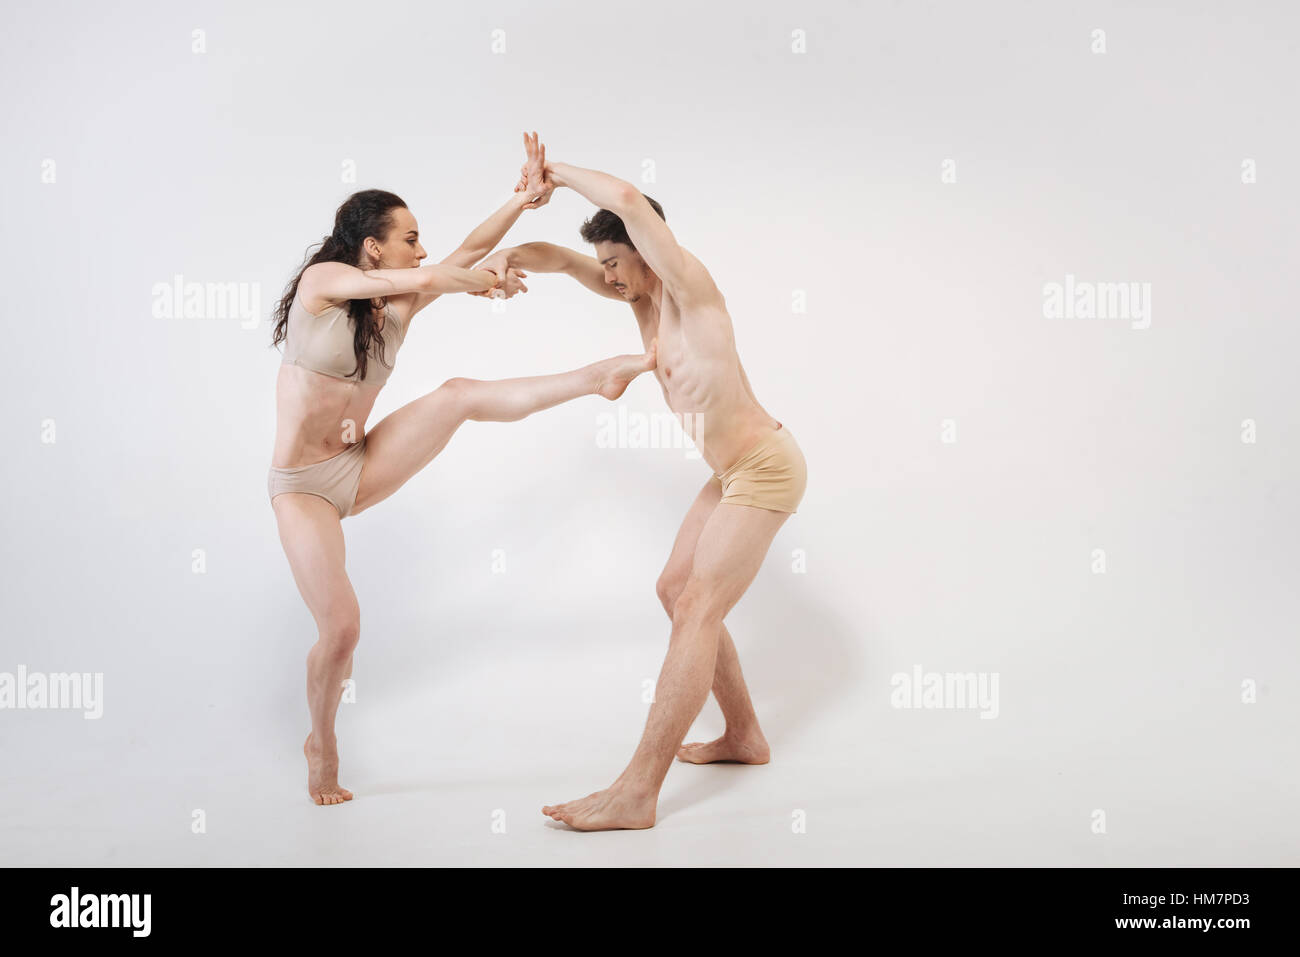 Enthusiastic ballet dancers realizing their art ideas - Stock Image